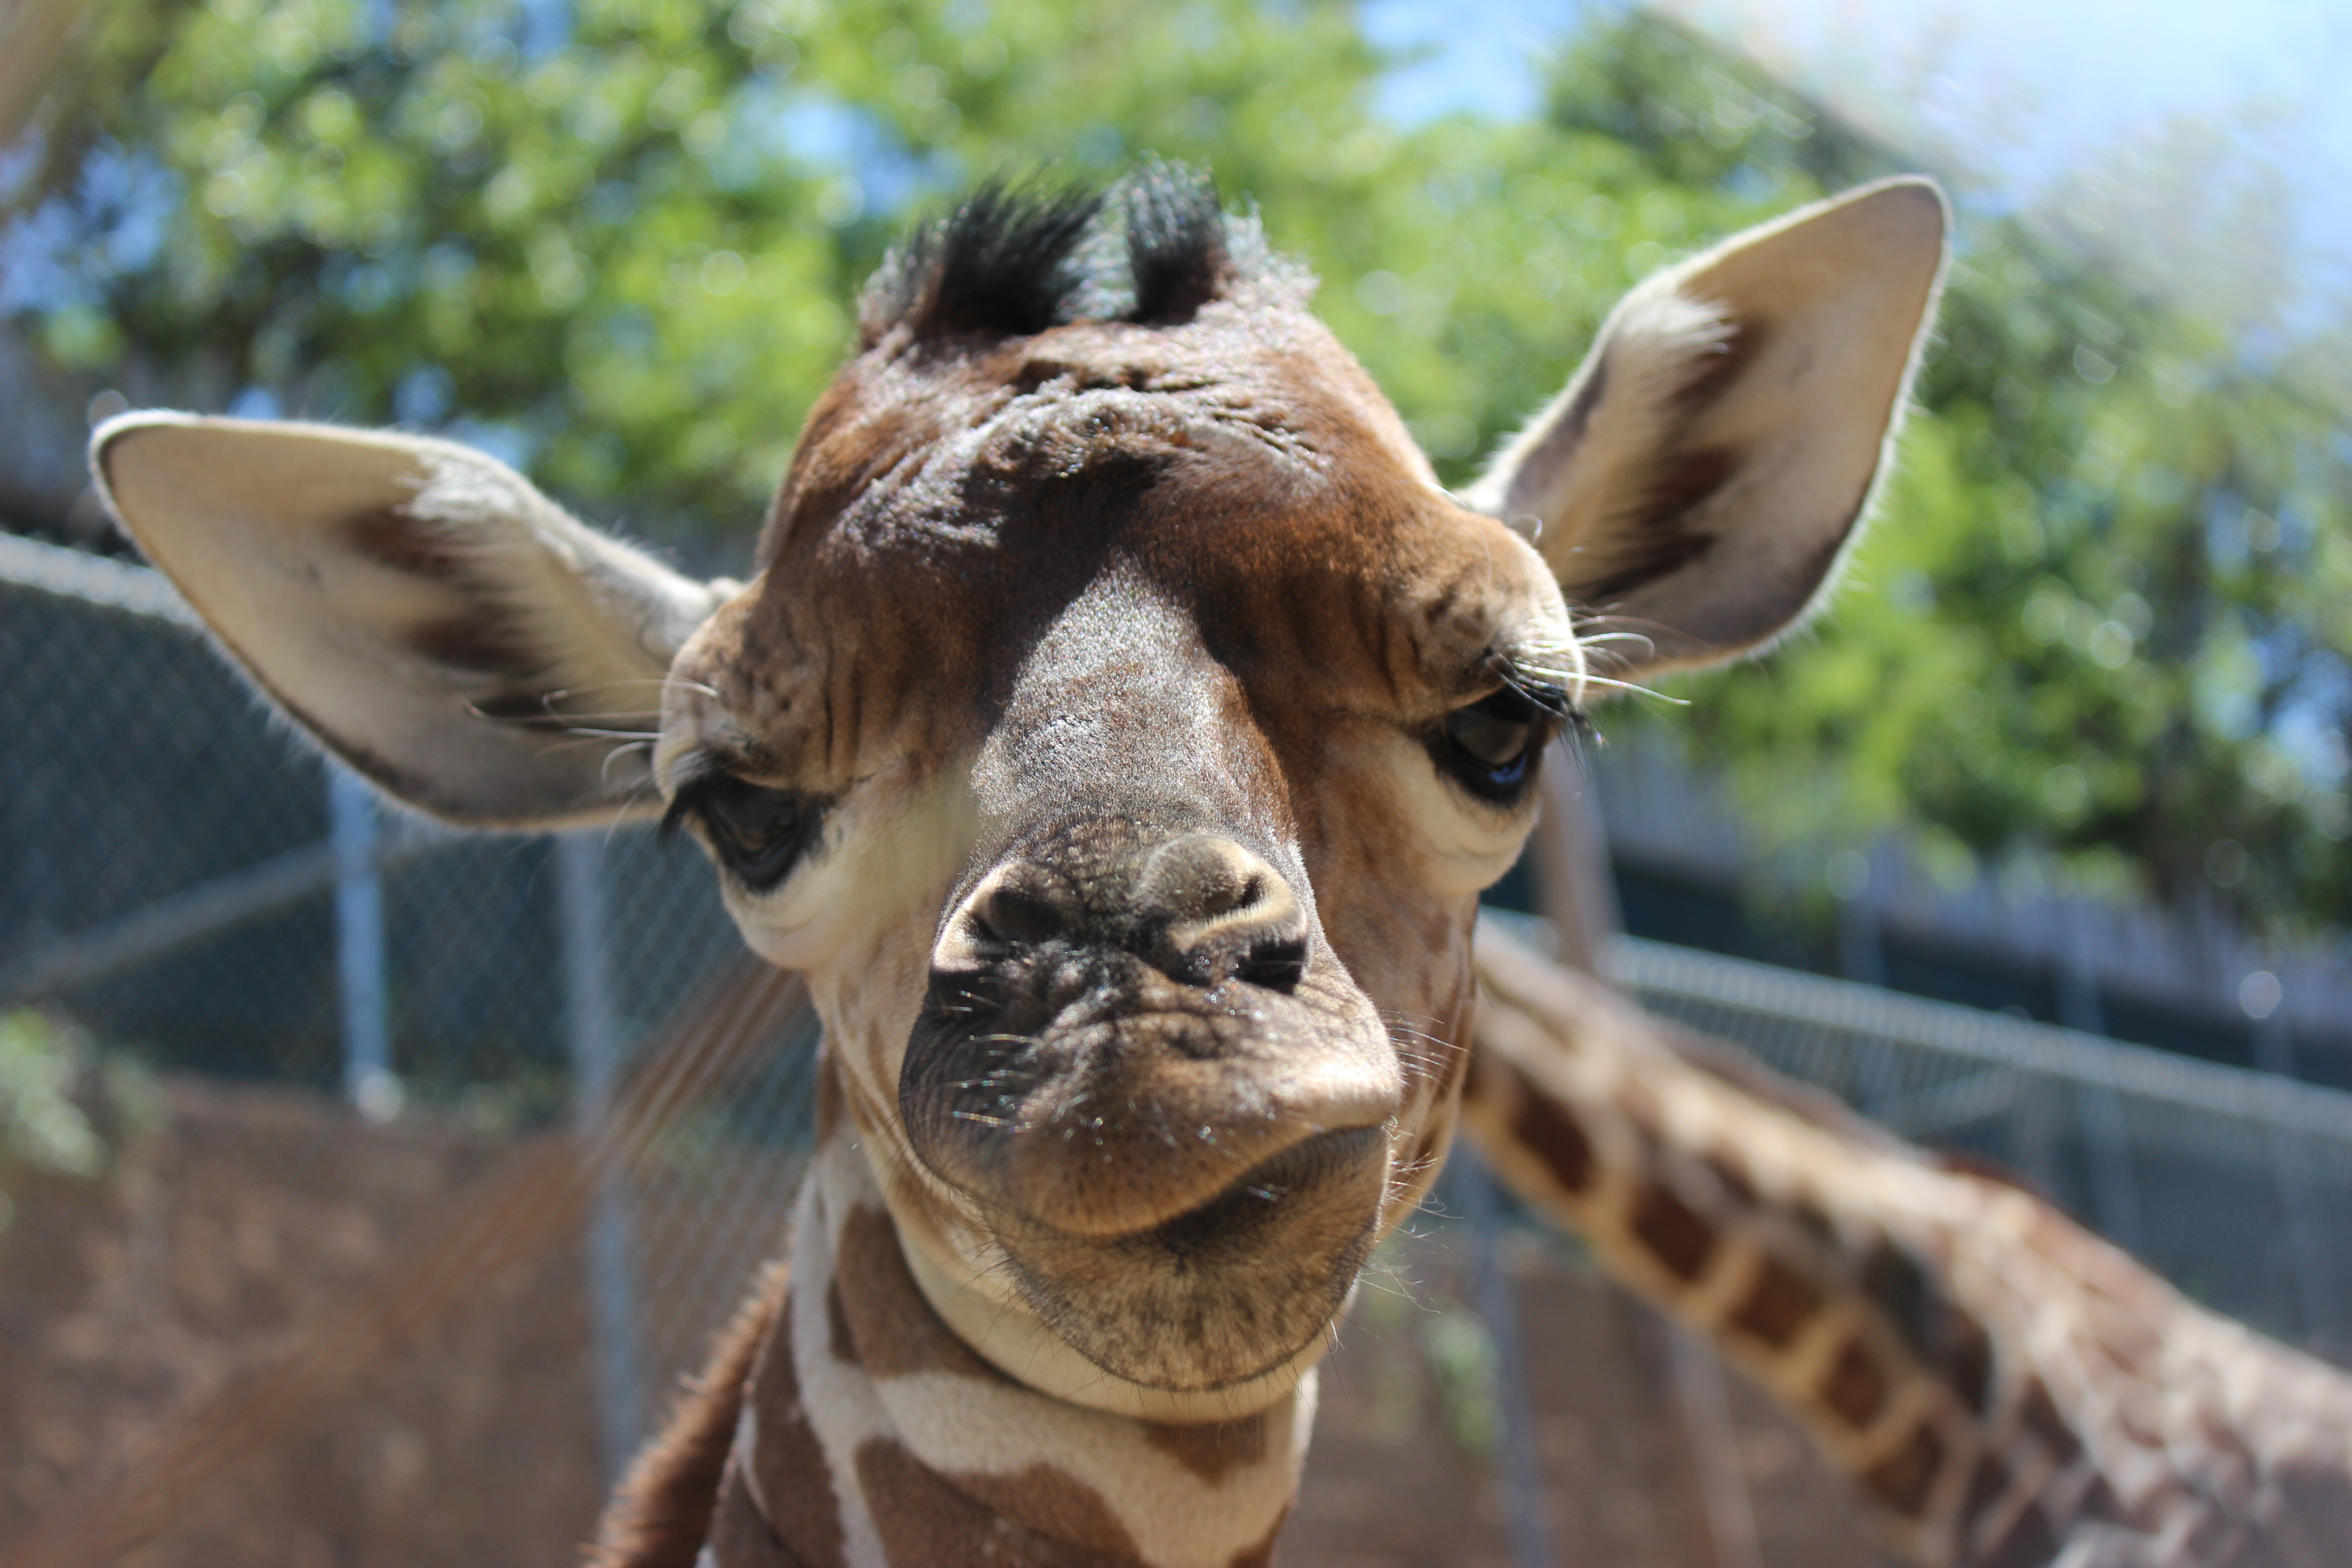 What is the name of the giraffes cub